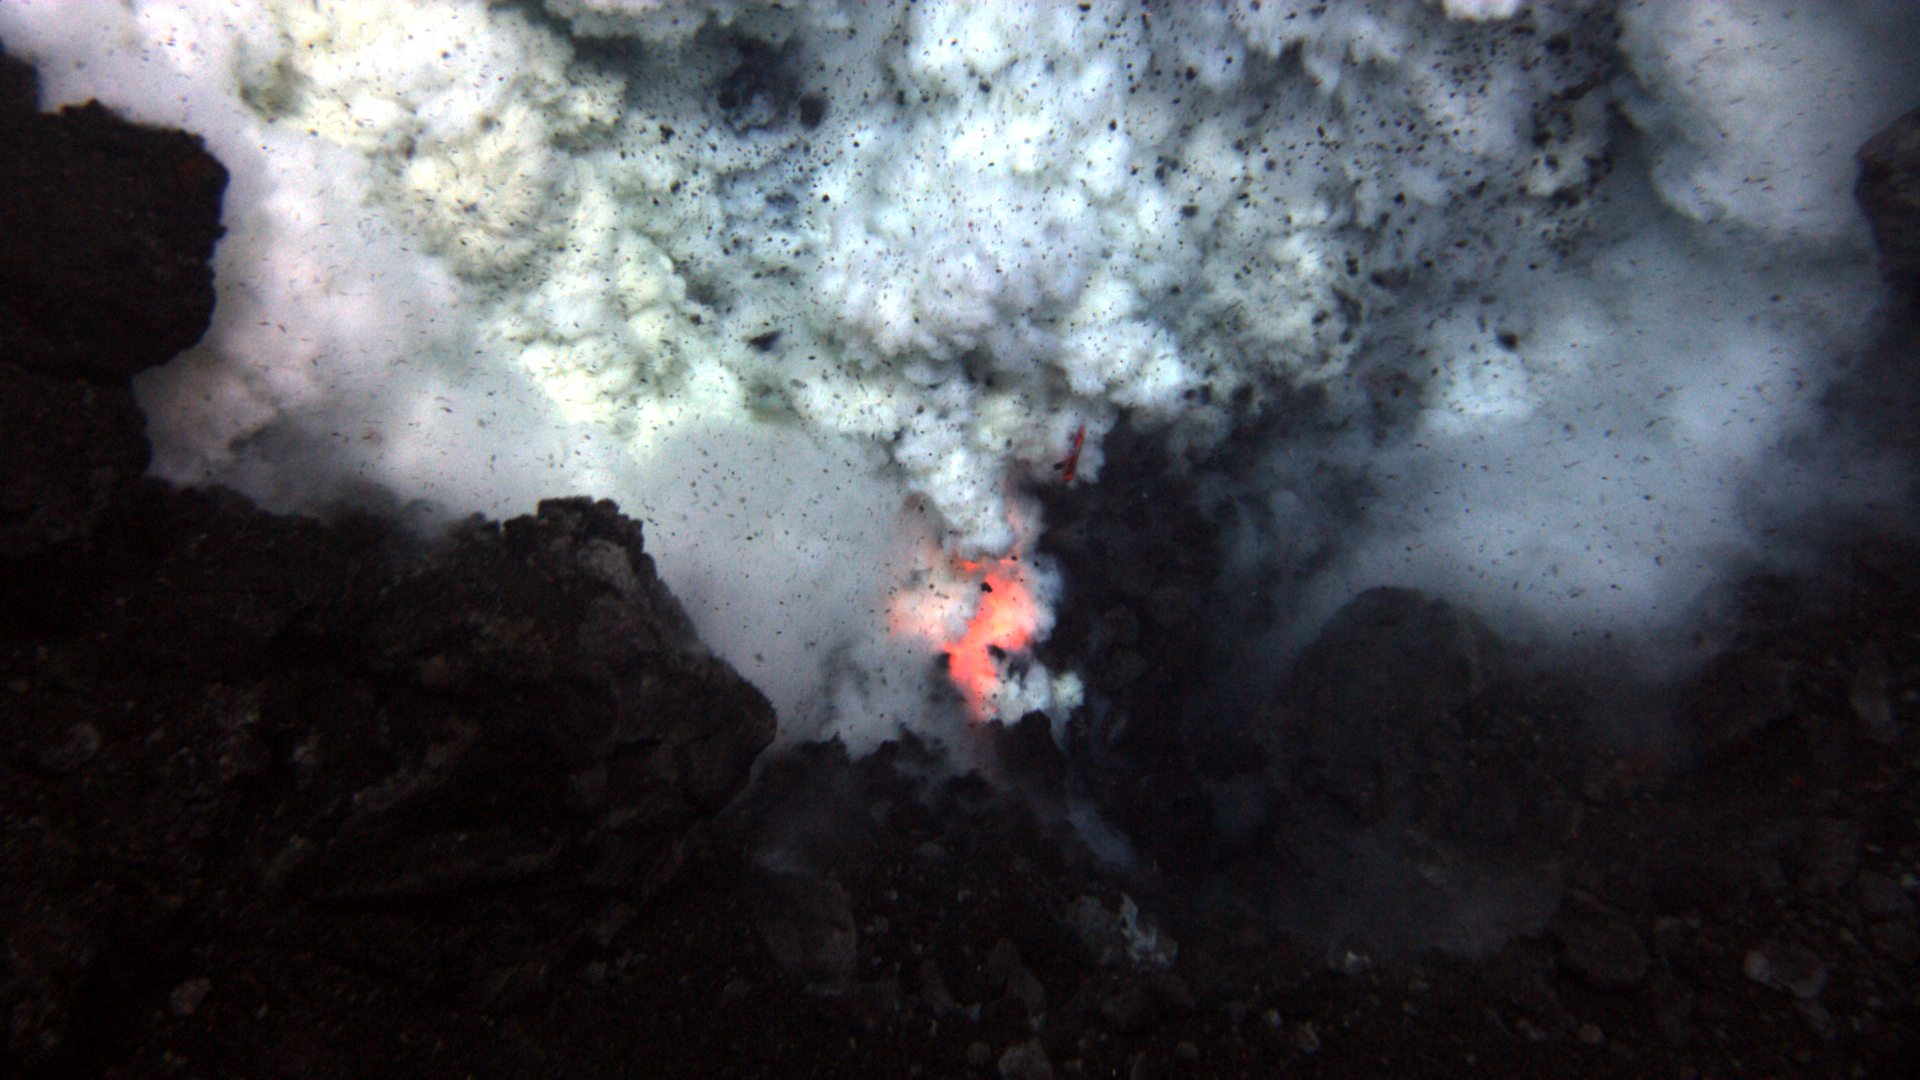 Underwater Volcano Eruption wallpaper - 258266